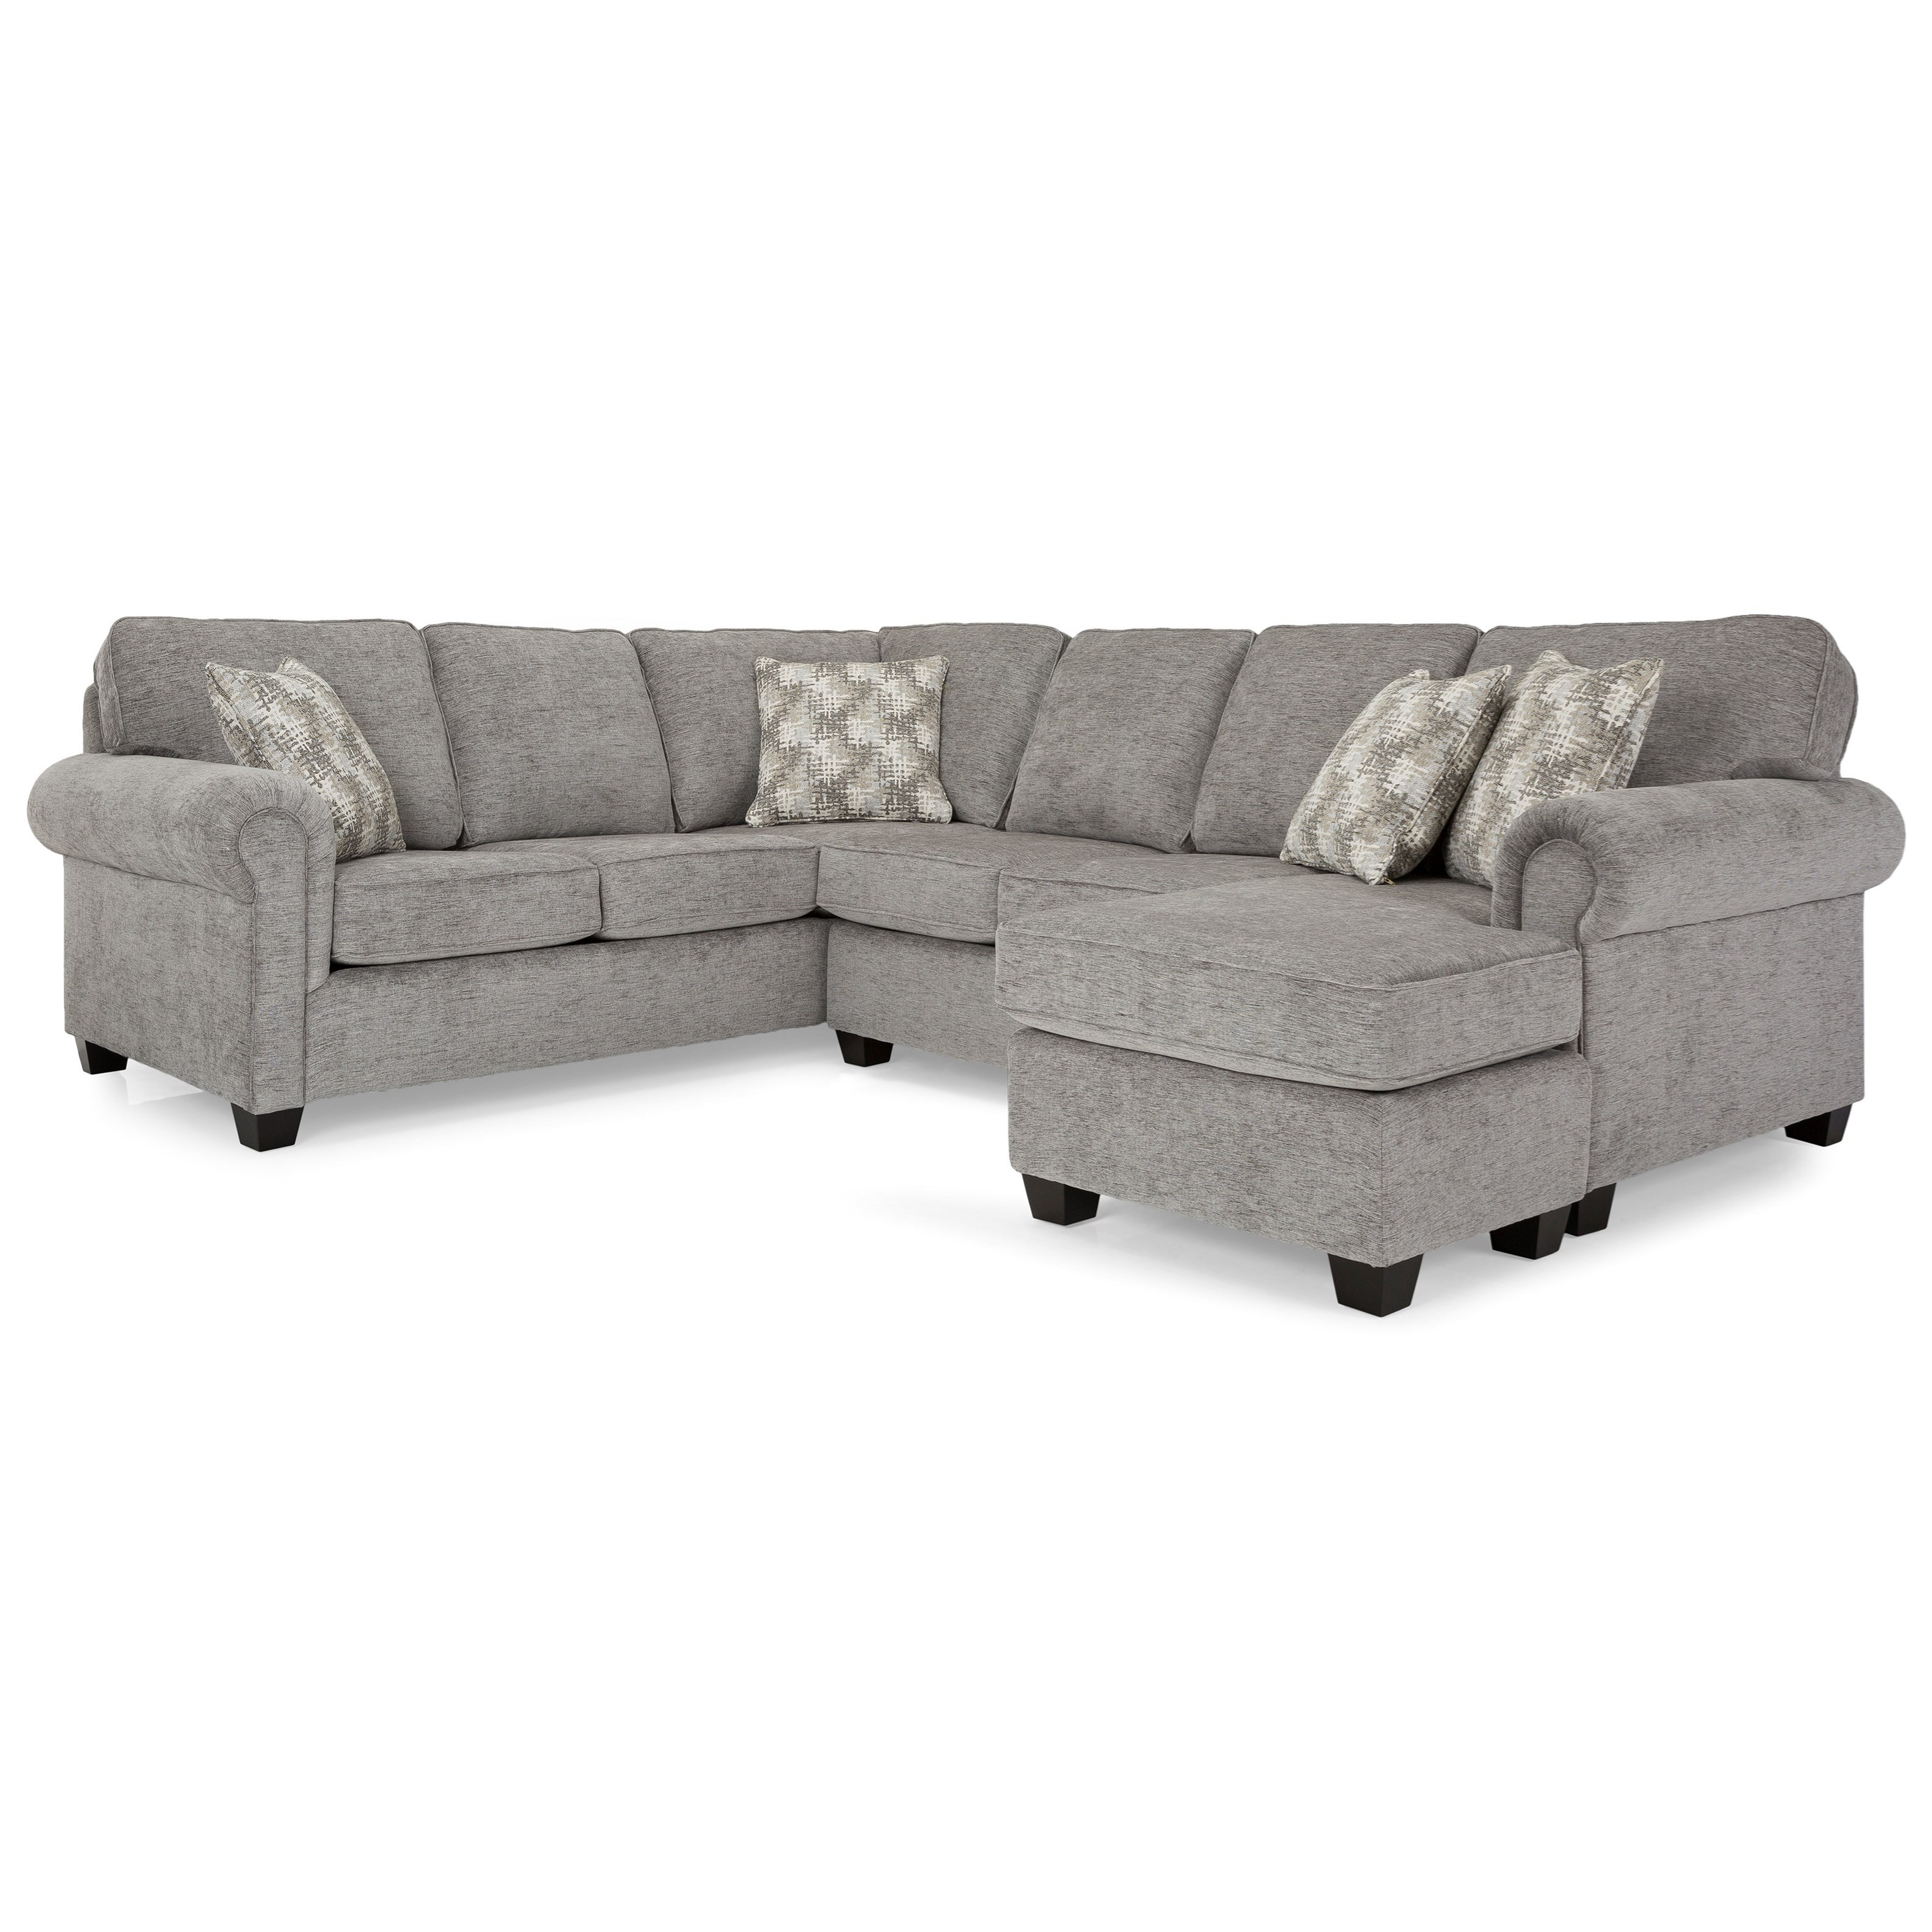 2006 Sectional Series Sectional with Chaise by Decor-Rest at Johnny Janosik